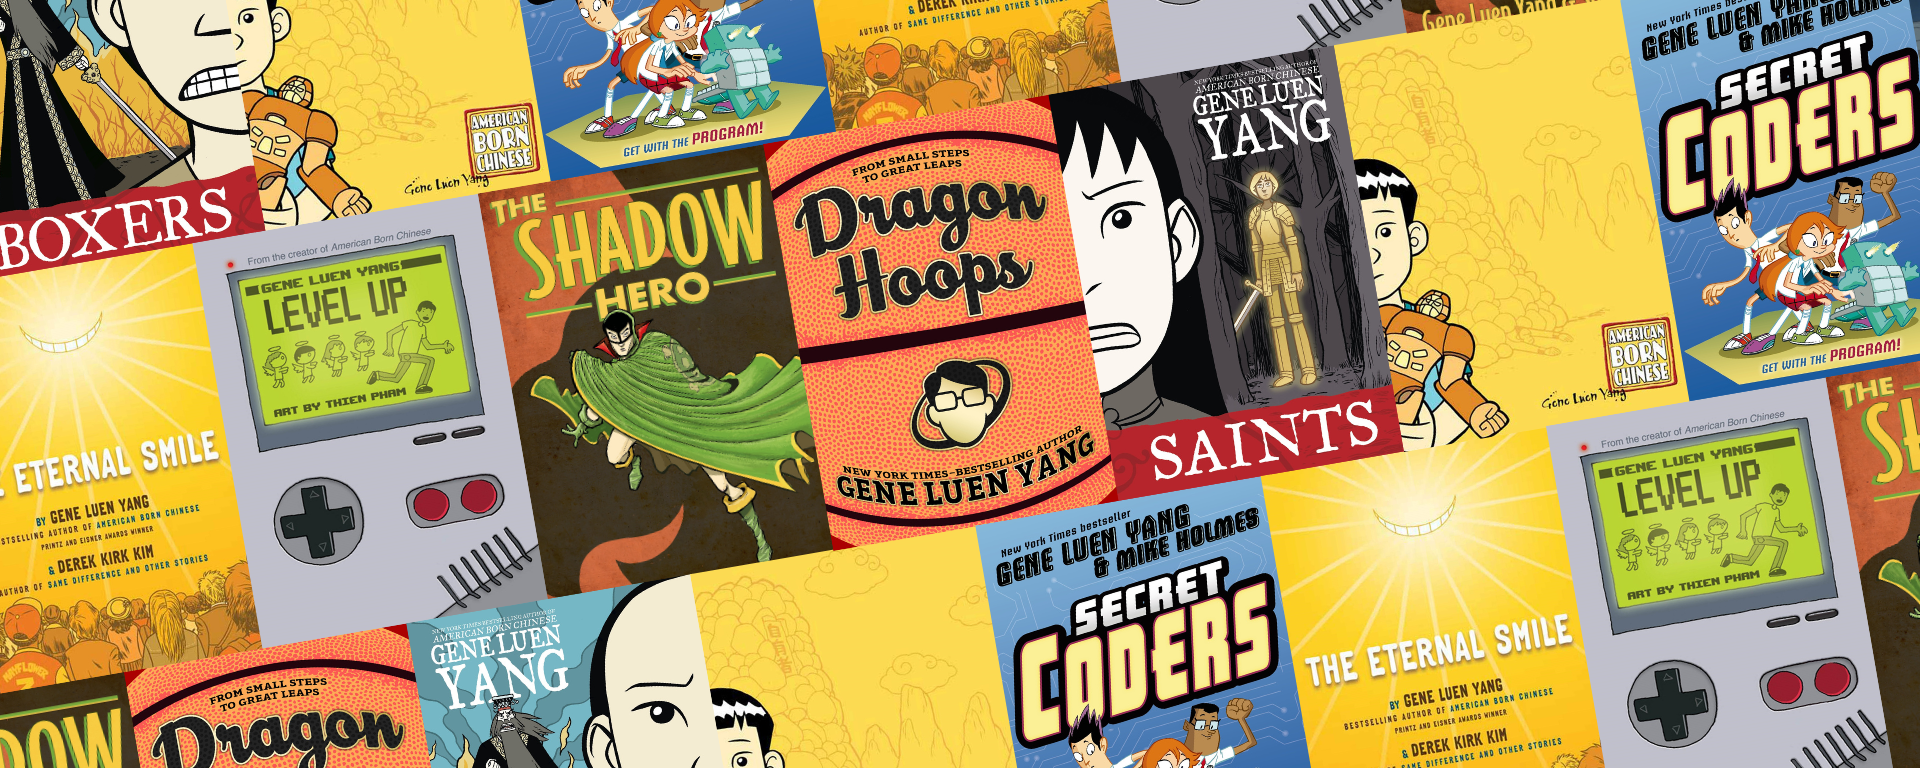 Collage of book covers by Gene Luen Yang.